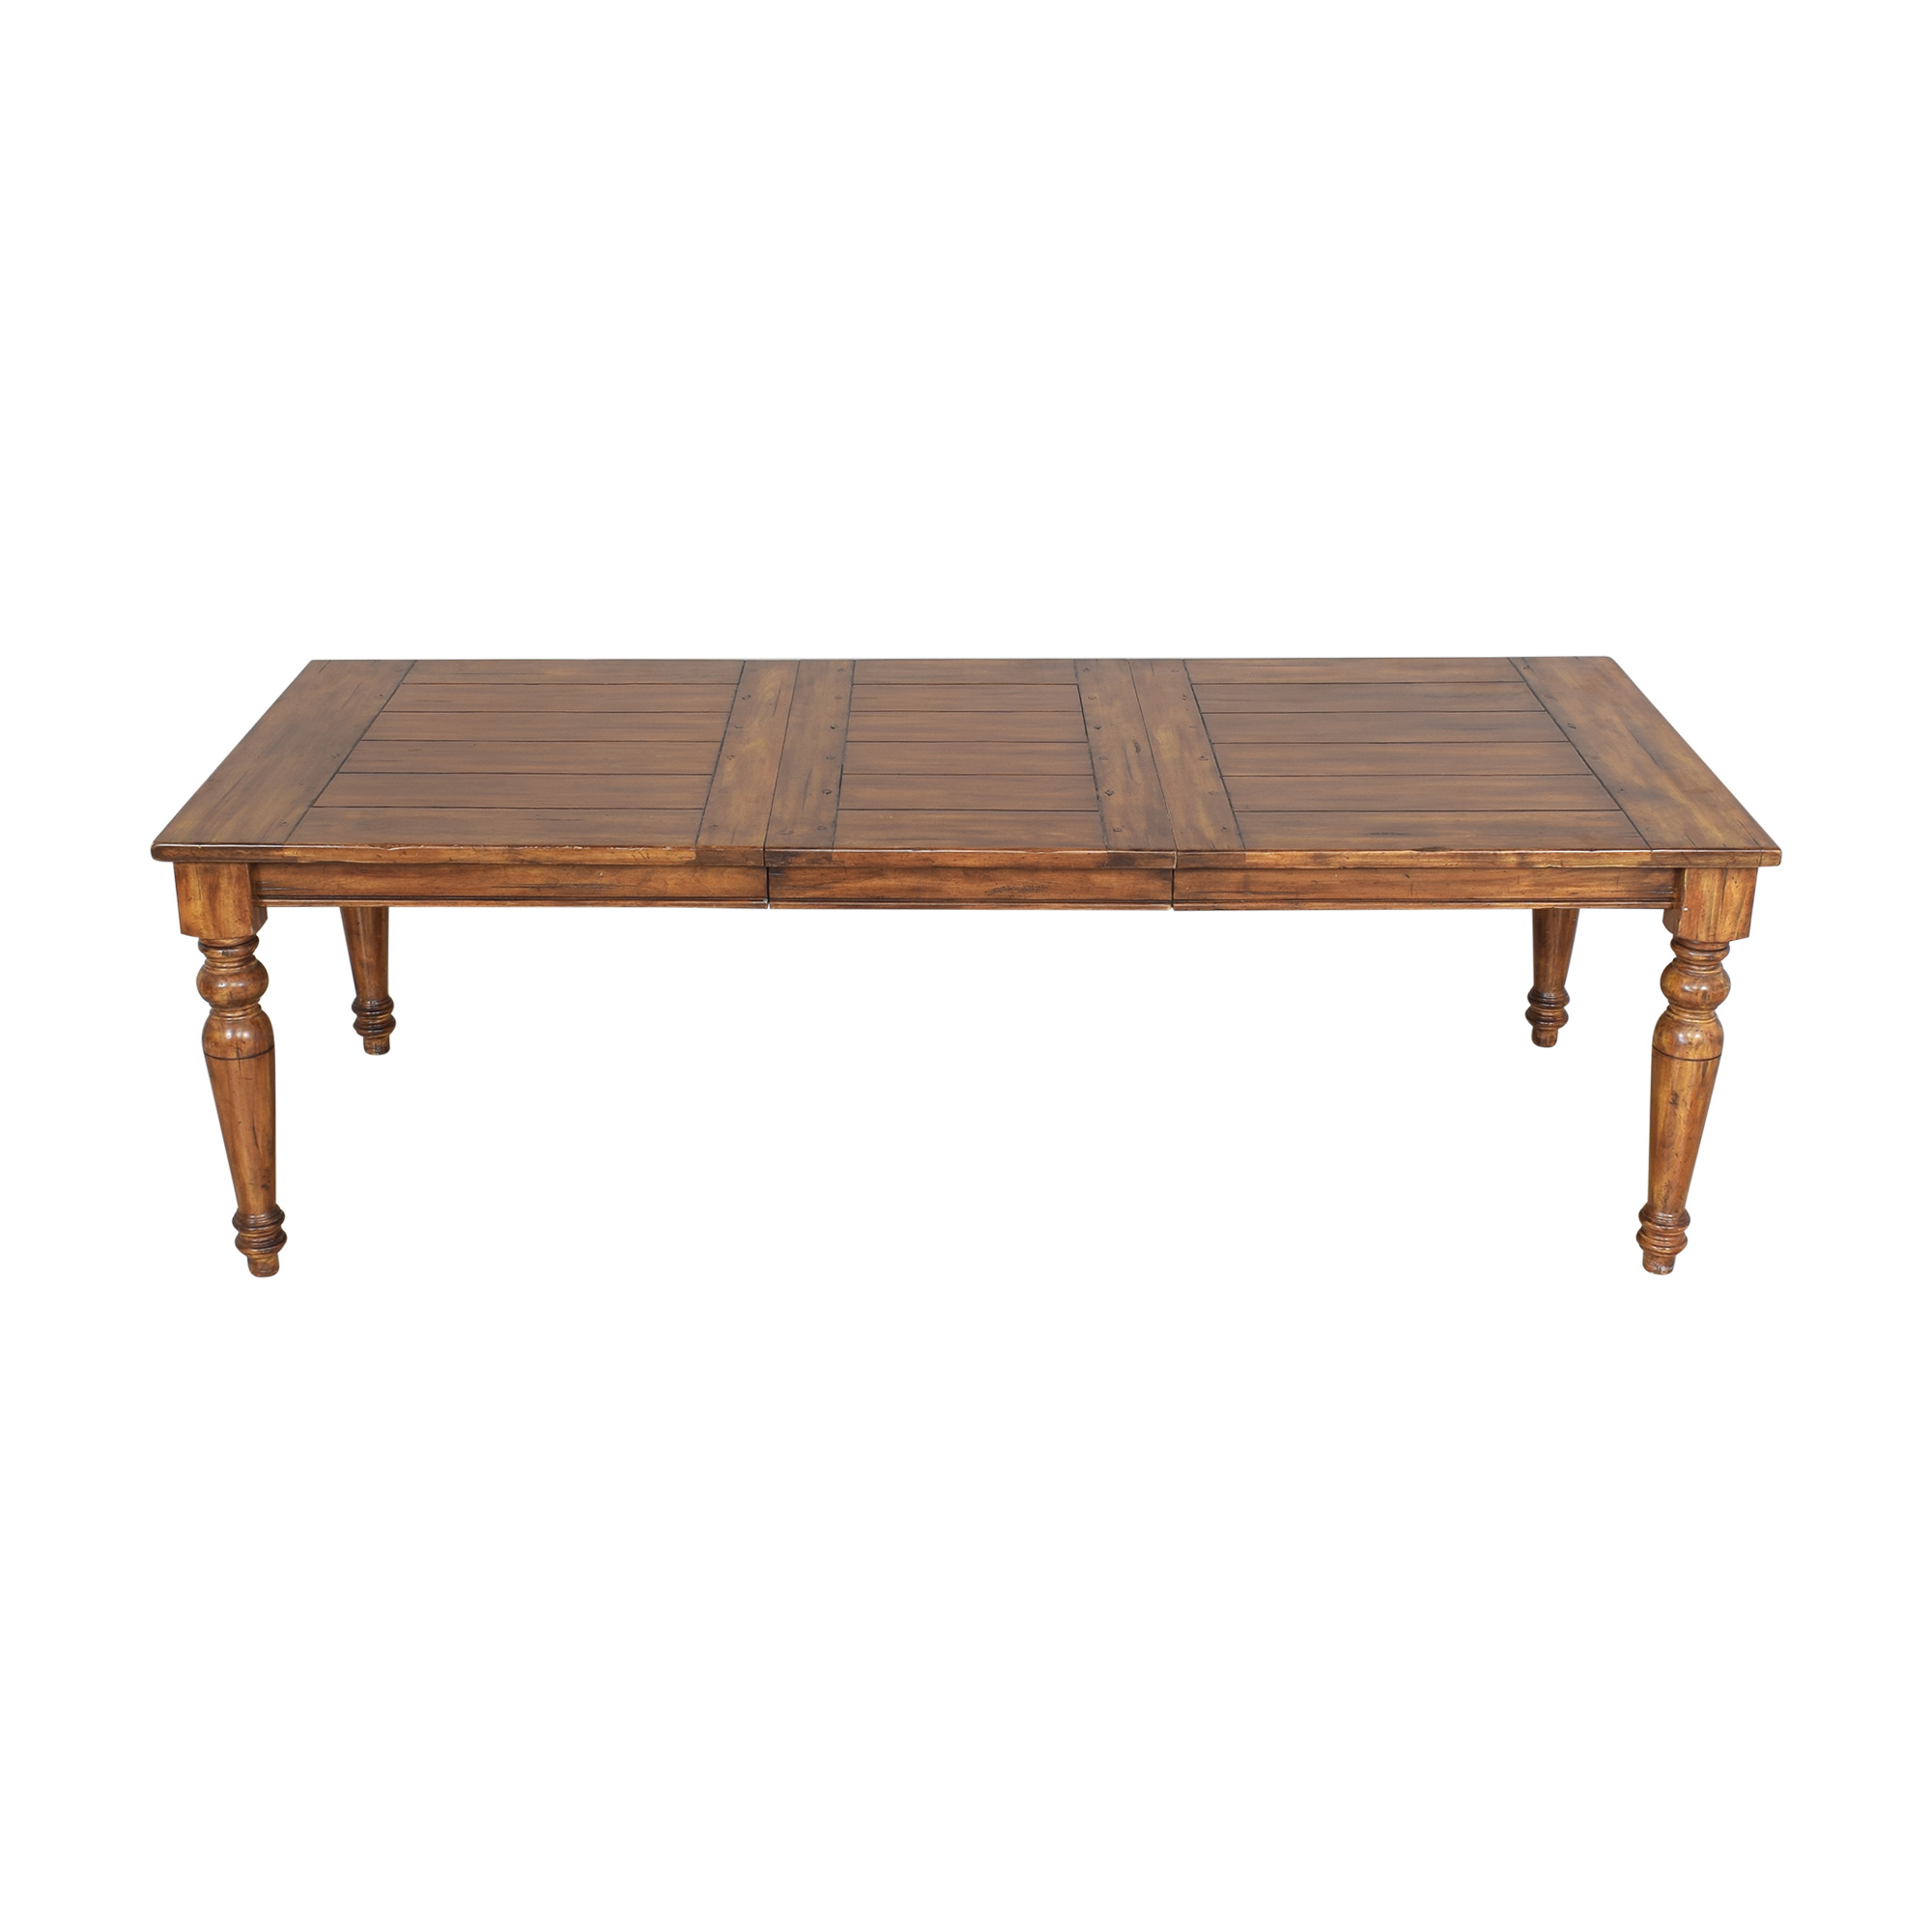 Rustic Extendable Dining Table